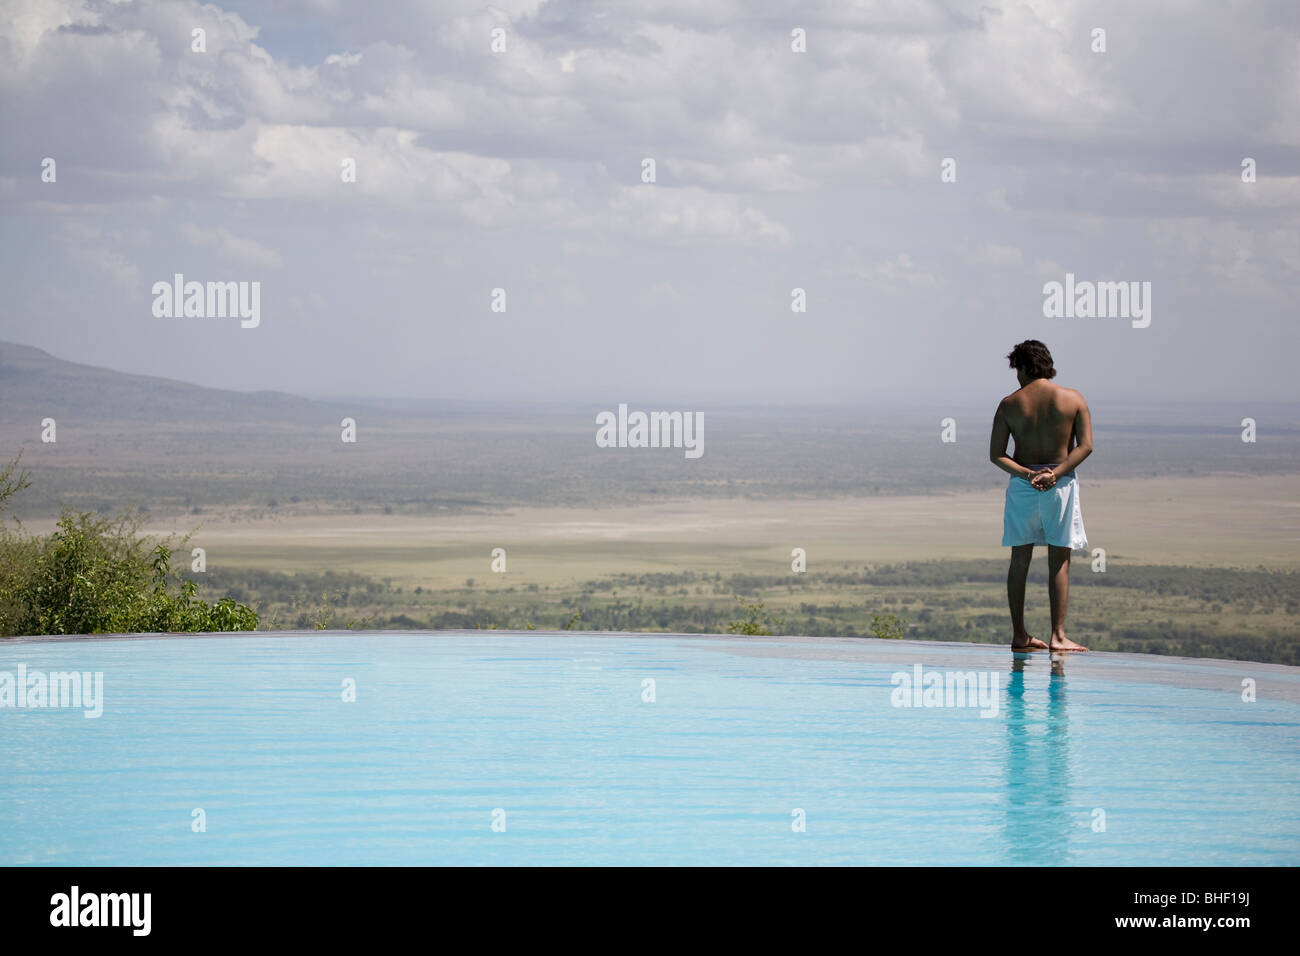 Bather by outdoor swimming pool at the Serena Manyara Lodge, Tanzania - Stock Image